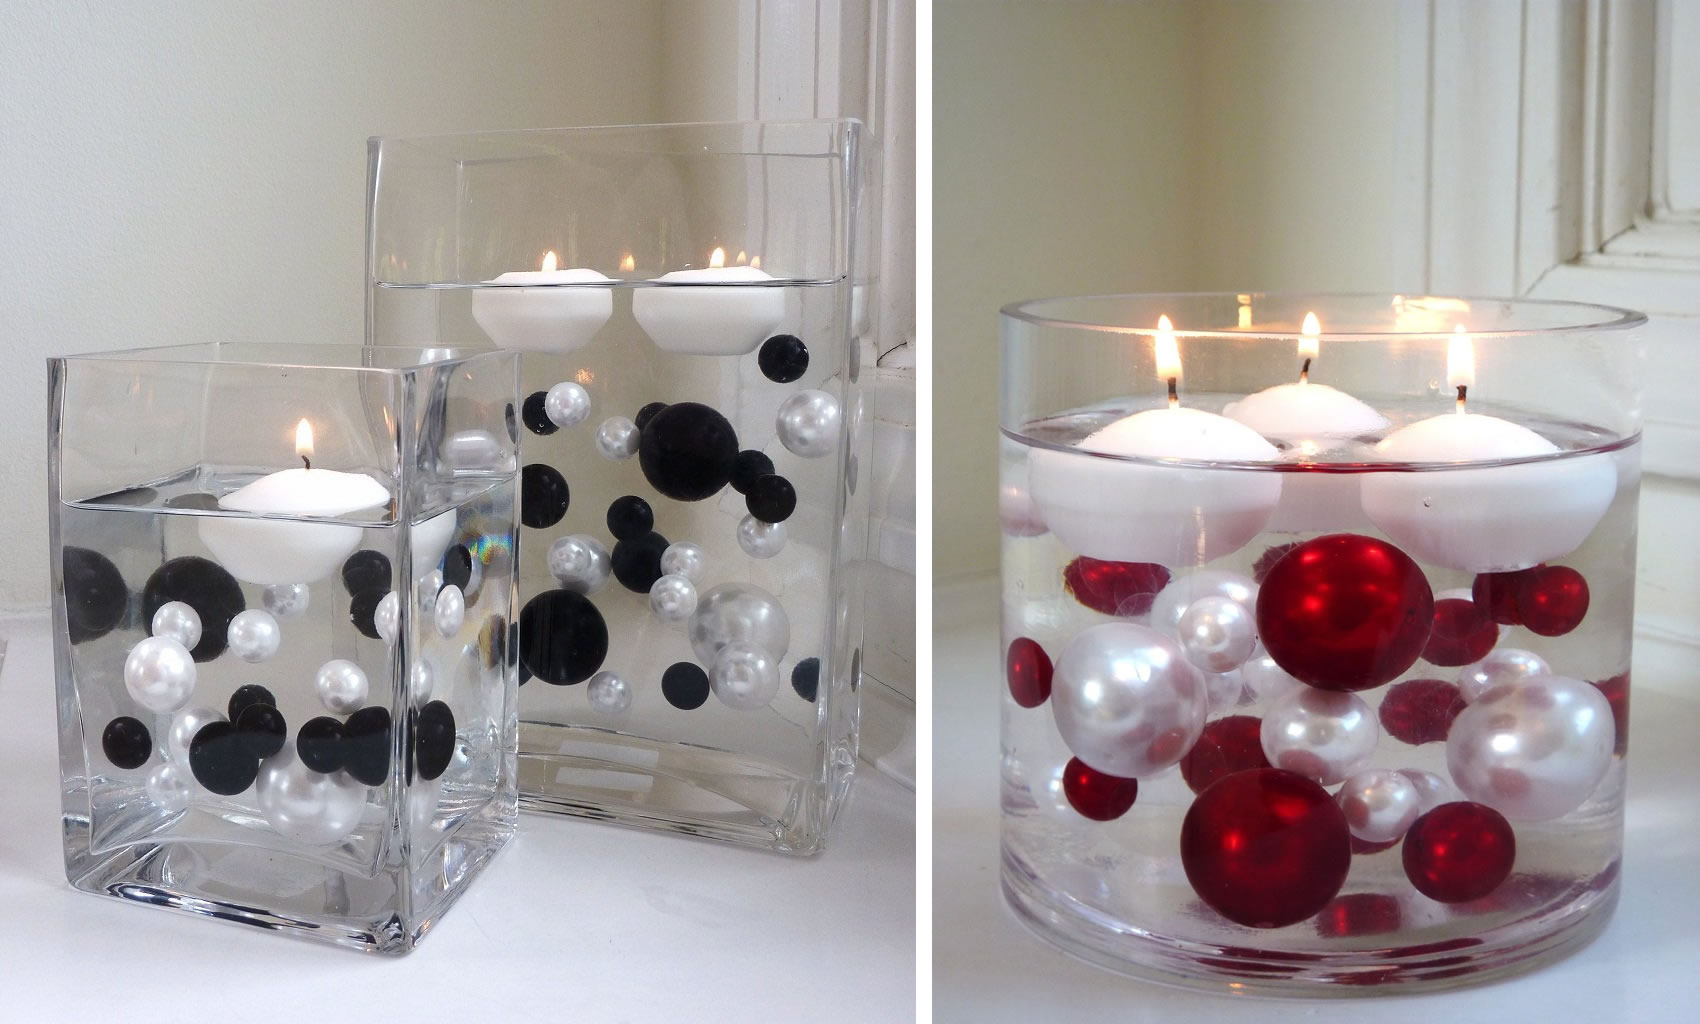 Diy candle holder ideas to brighten your home for Idee deco vase